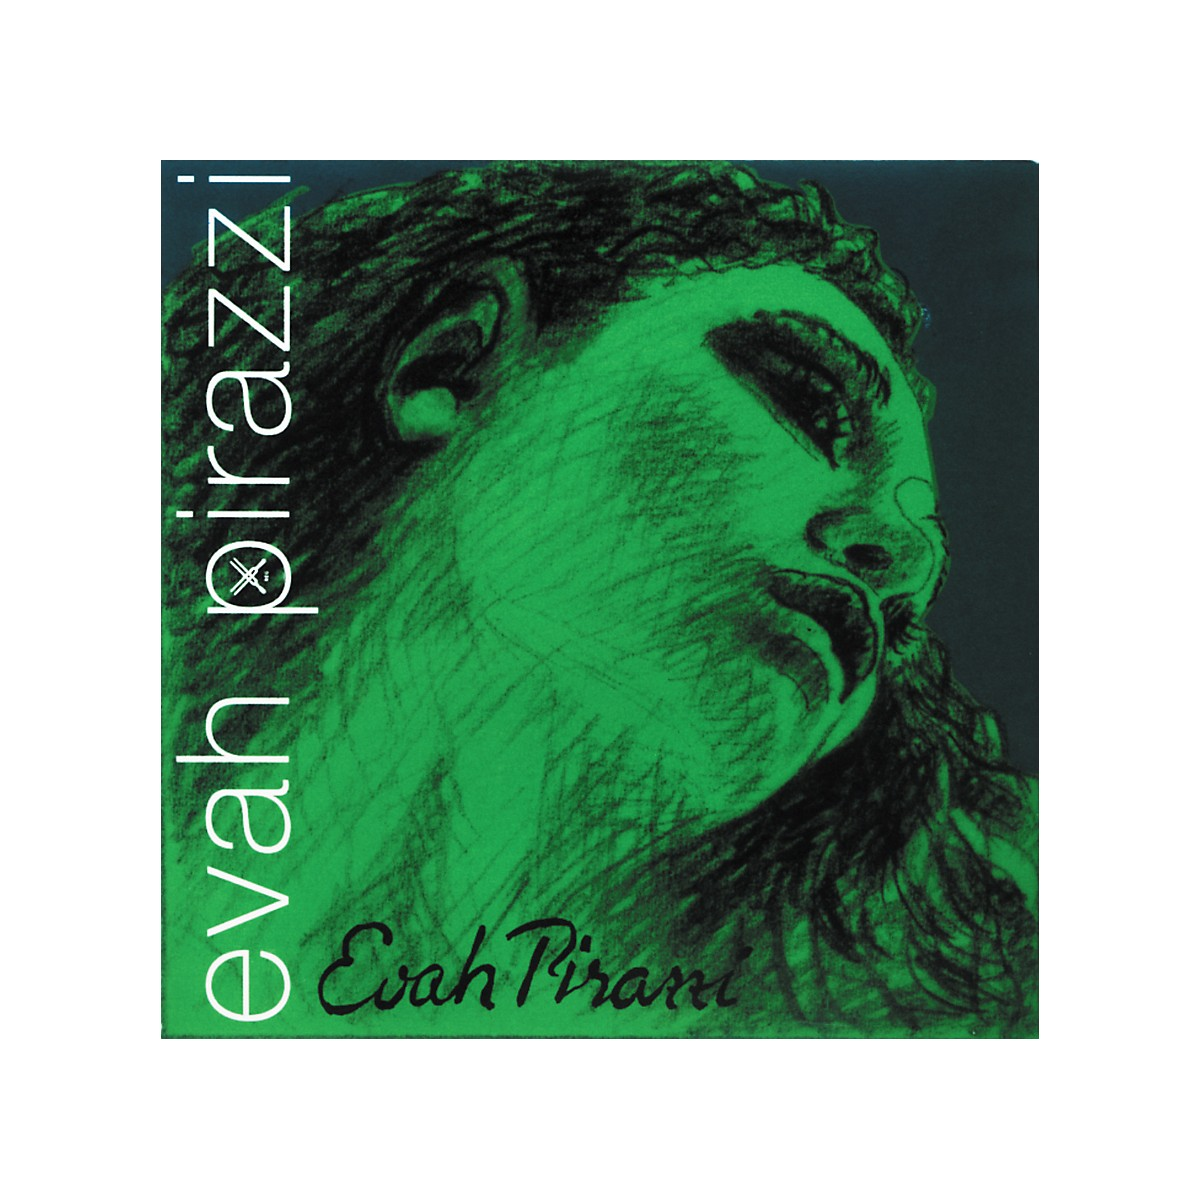 Pirastro Evah Pirazzi Series Cello String Set